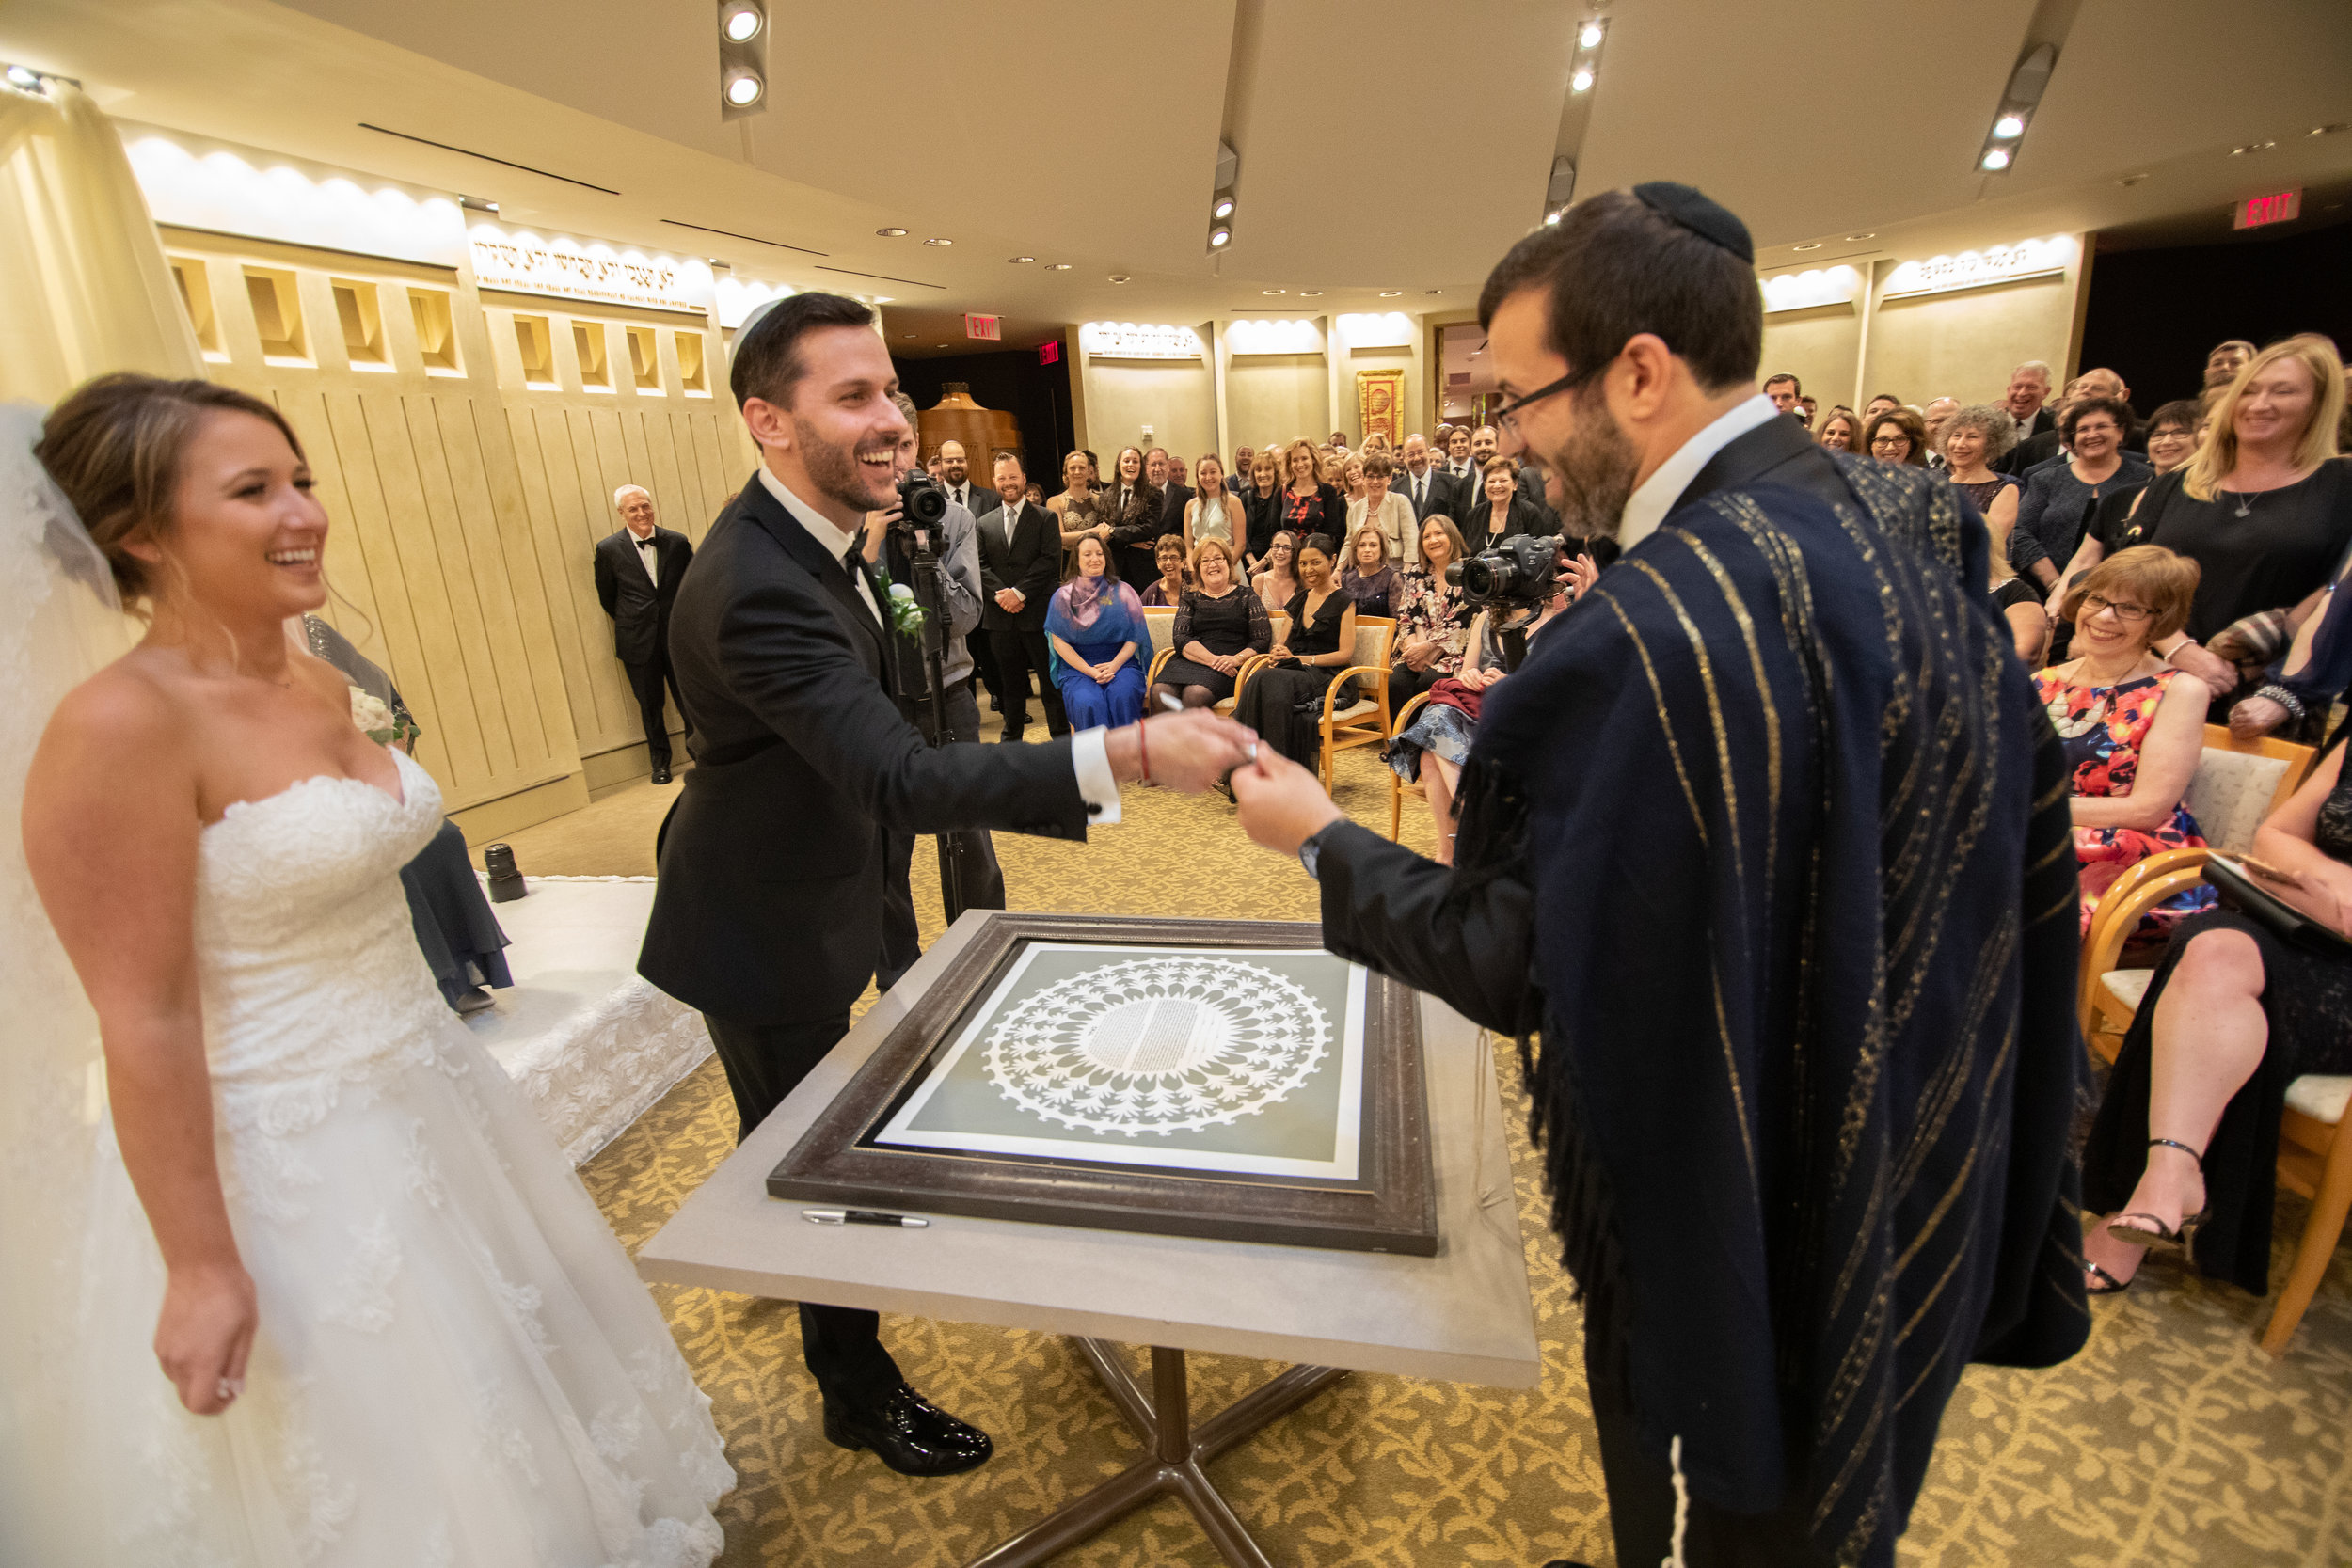 Signing of the Ketubah - Photography by the Atlanta Wedding photographers at AtlantaArtisticWeddings